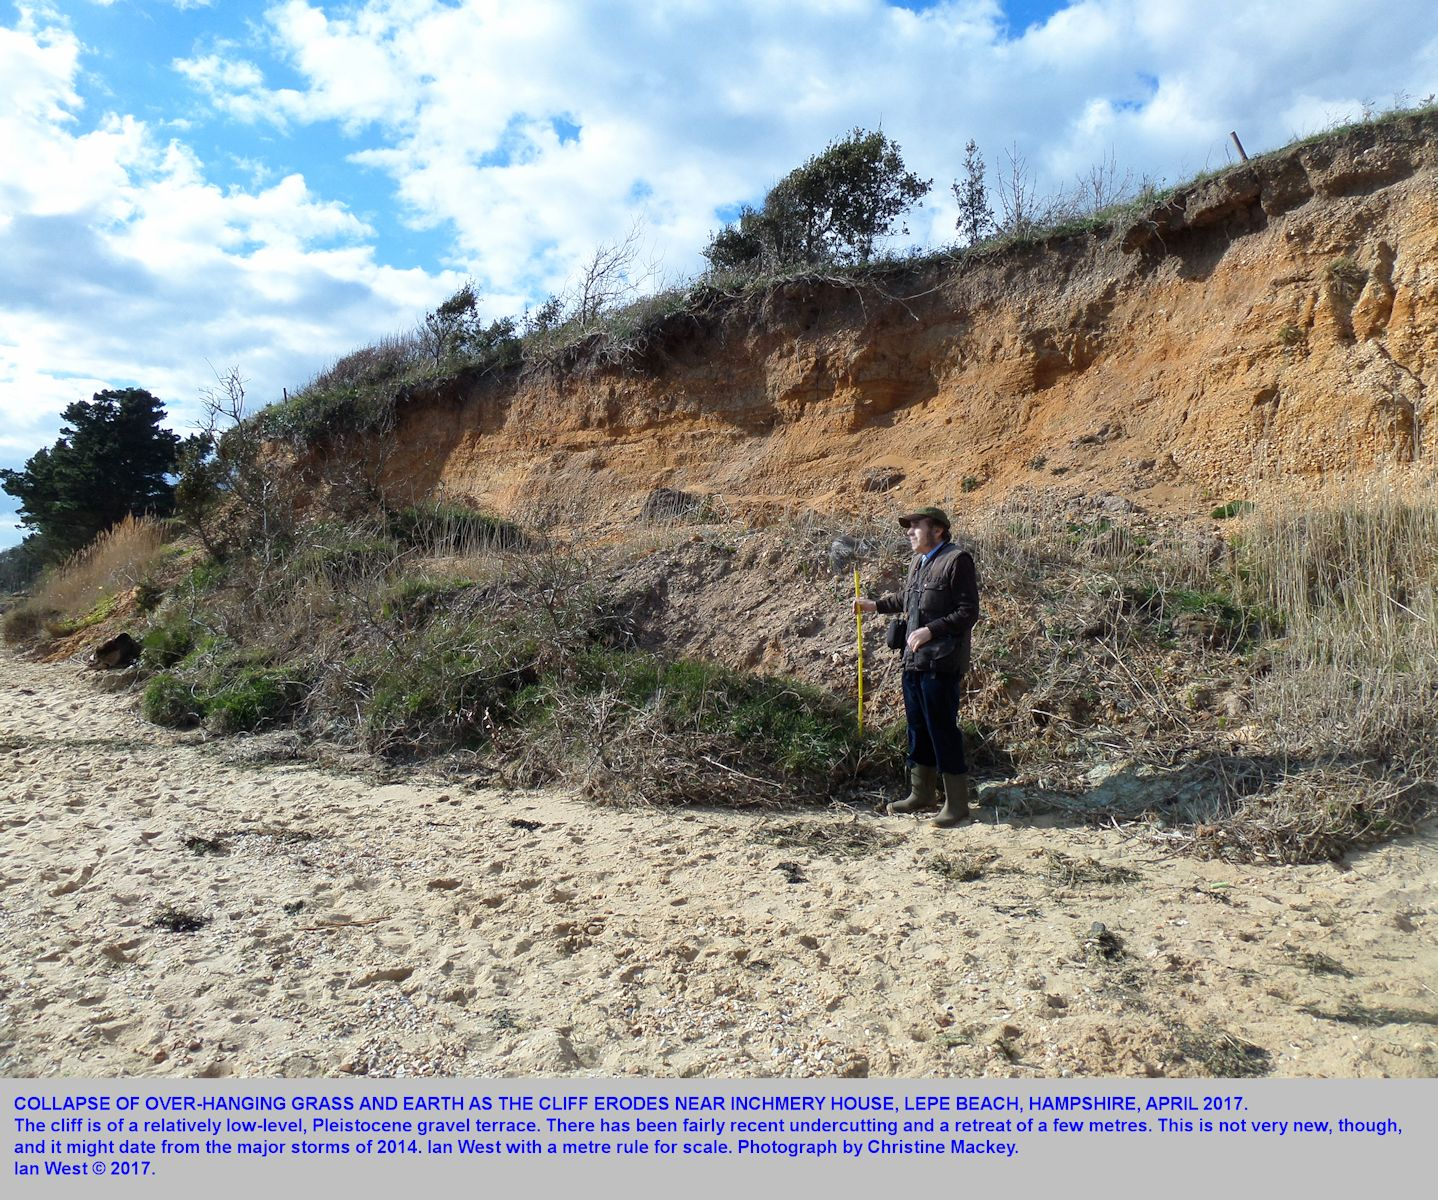 Grass and soil have fallen from the low cliff near Inchmery House, Lepe Beach, Hampshire, with Ian West in the picture